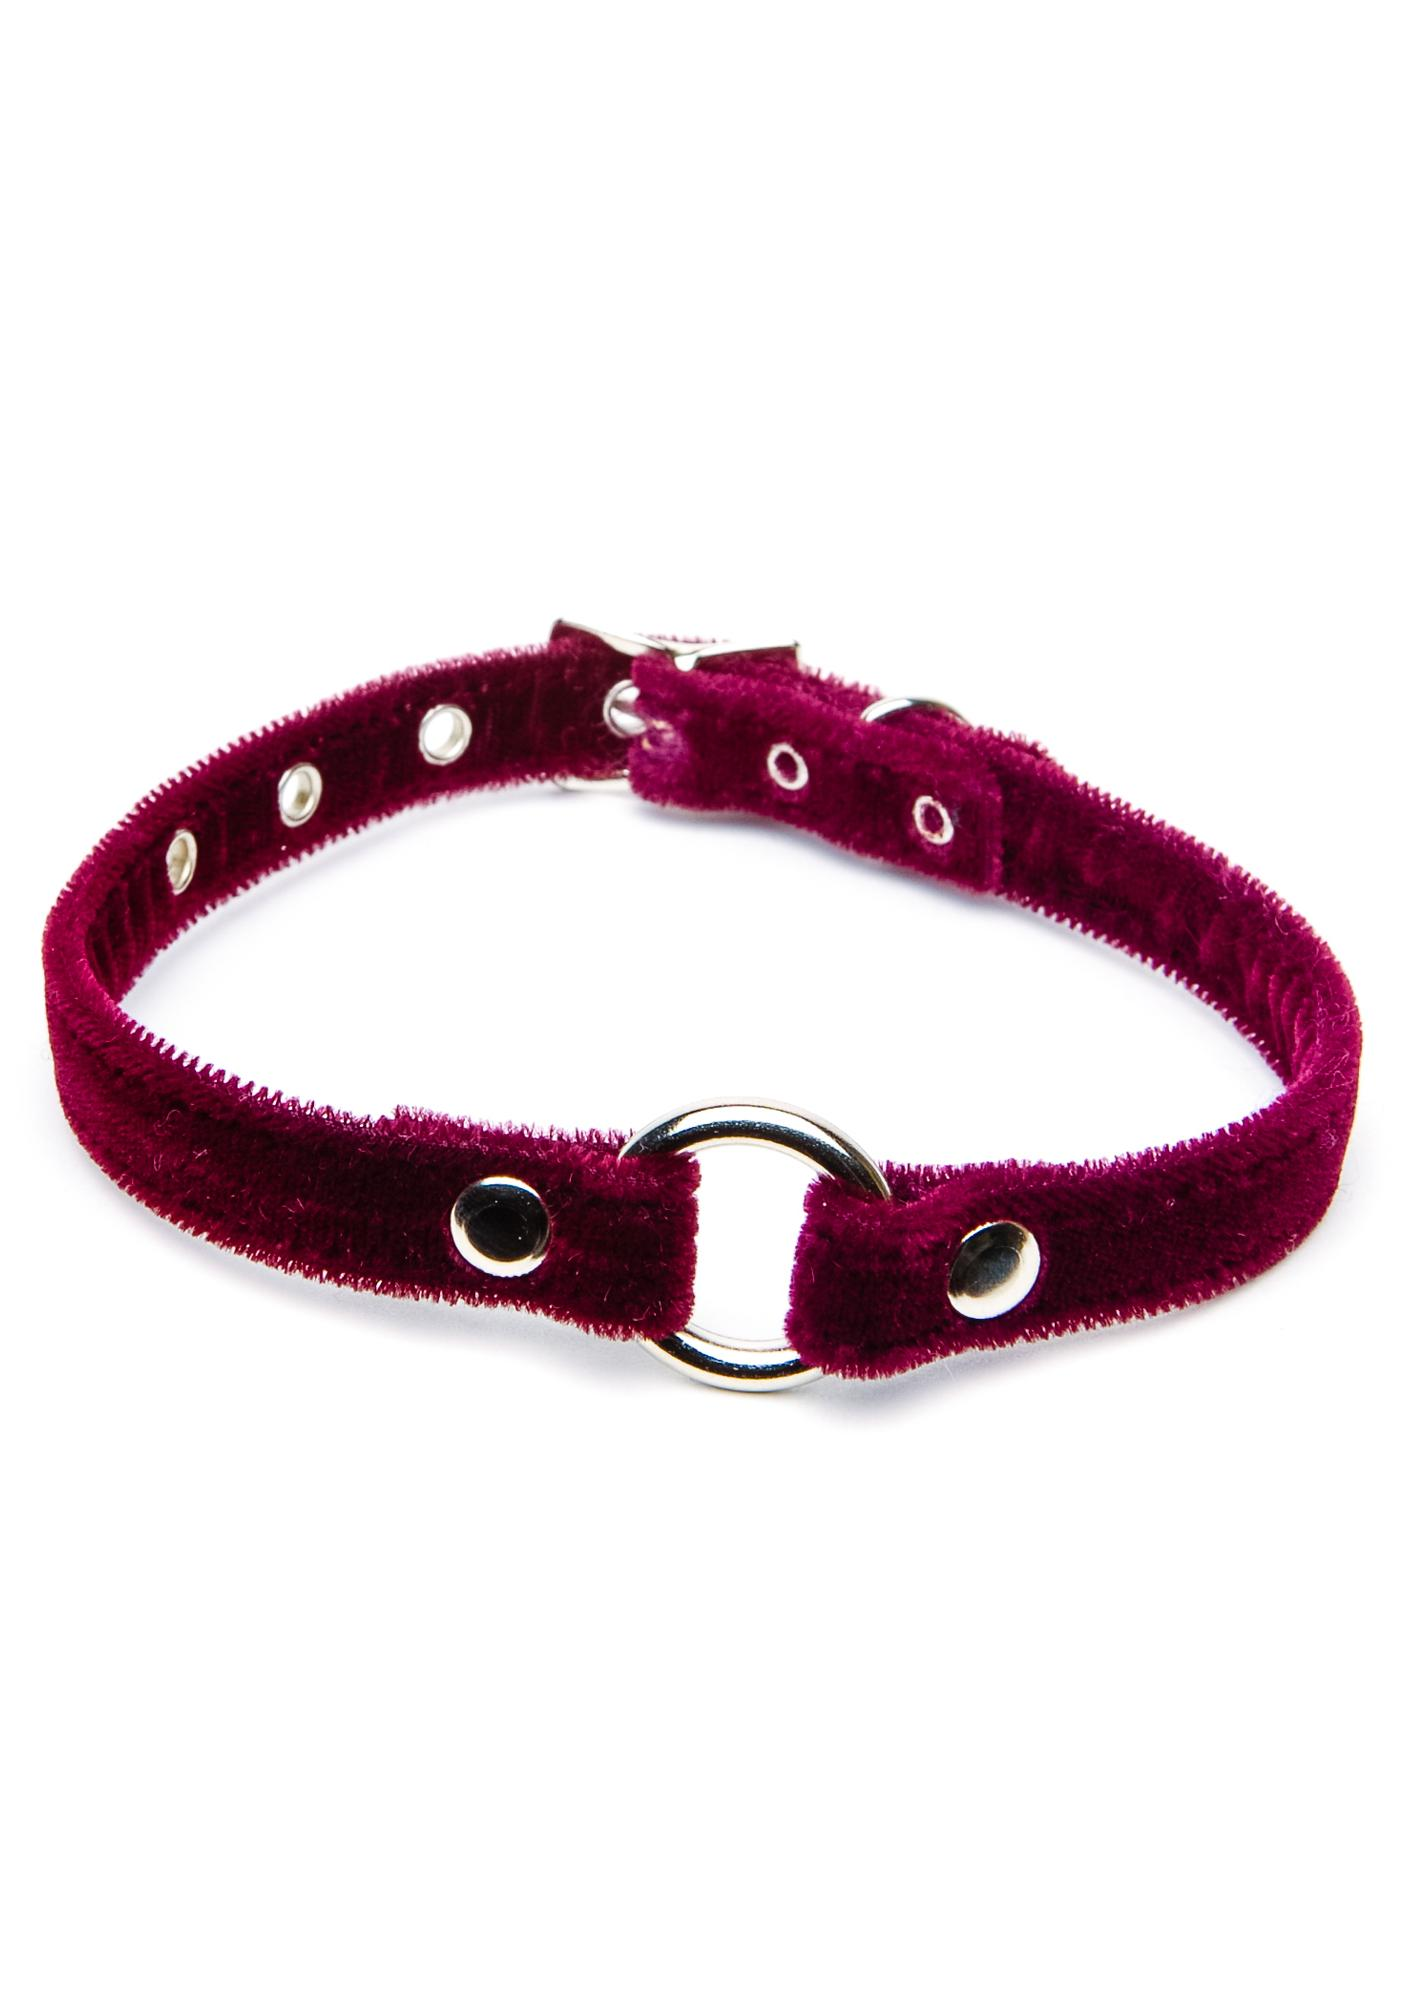 Club Exx Just Say O Velvet Choker